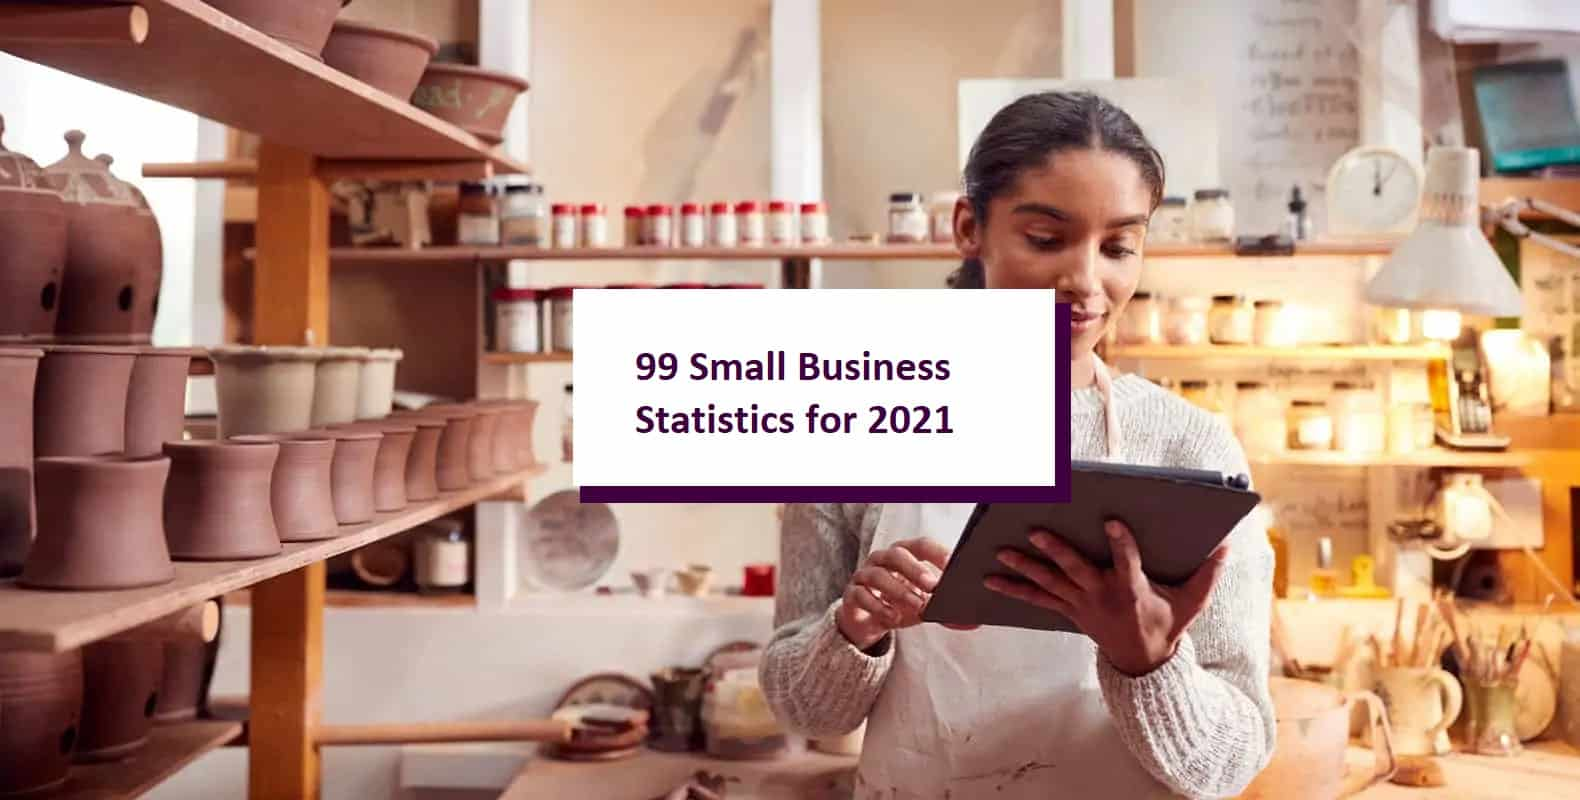 99 Small Business Statistics for 2021